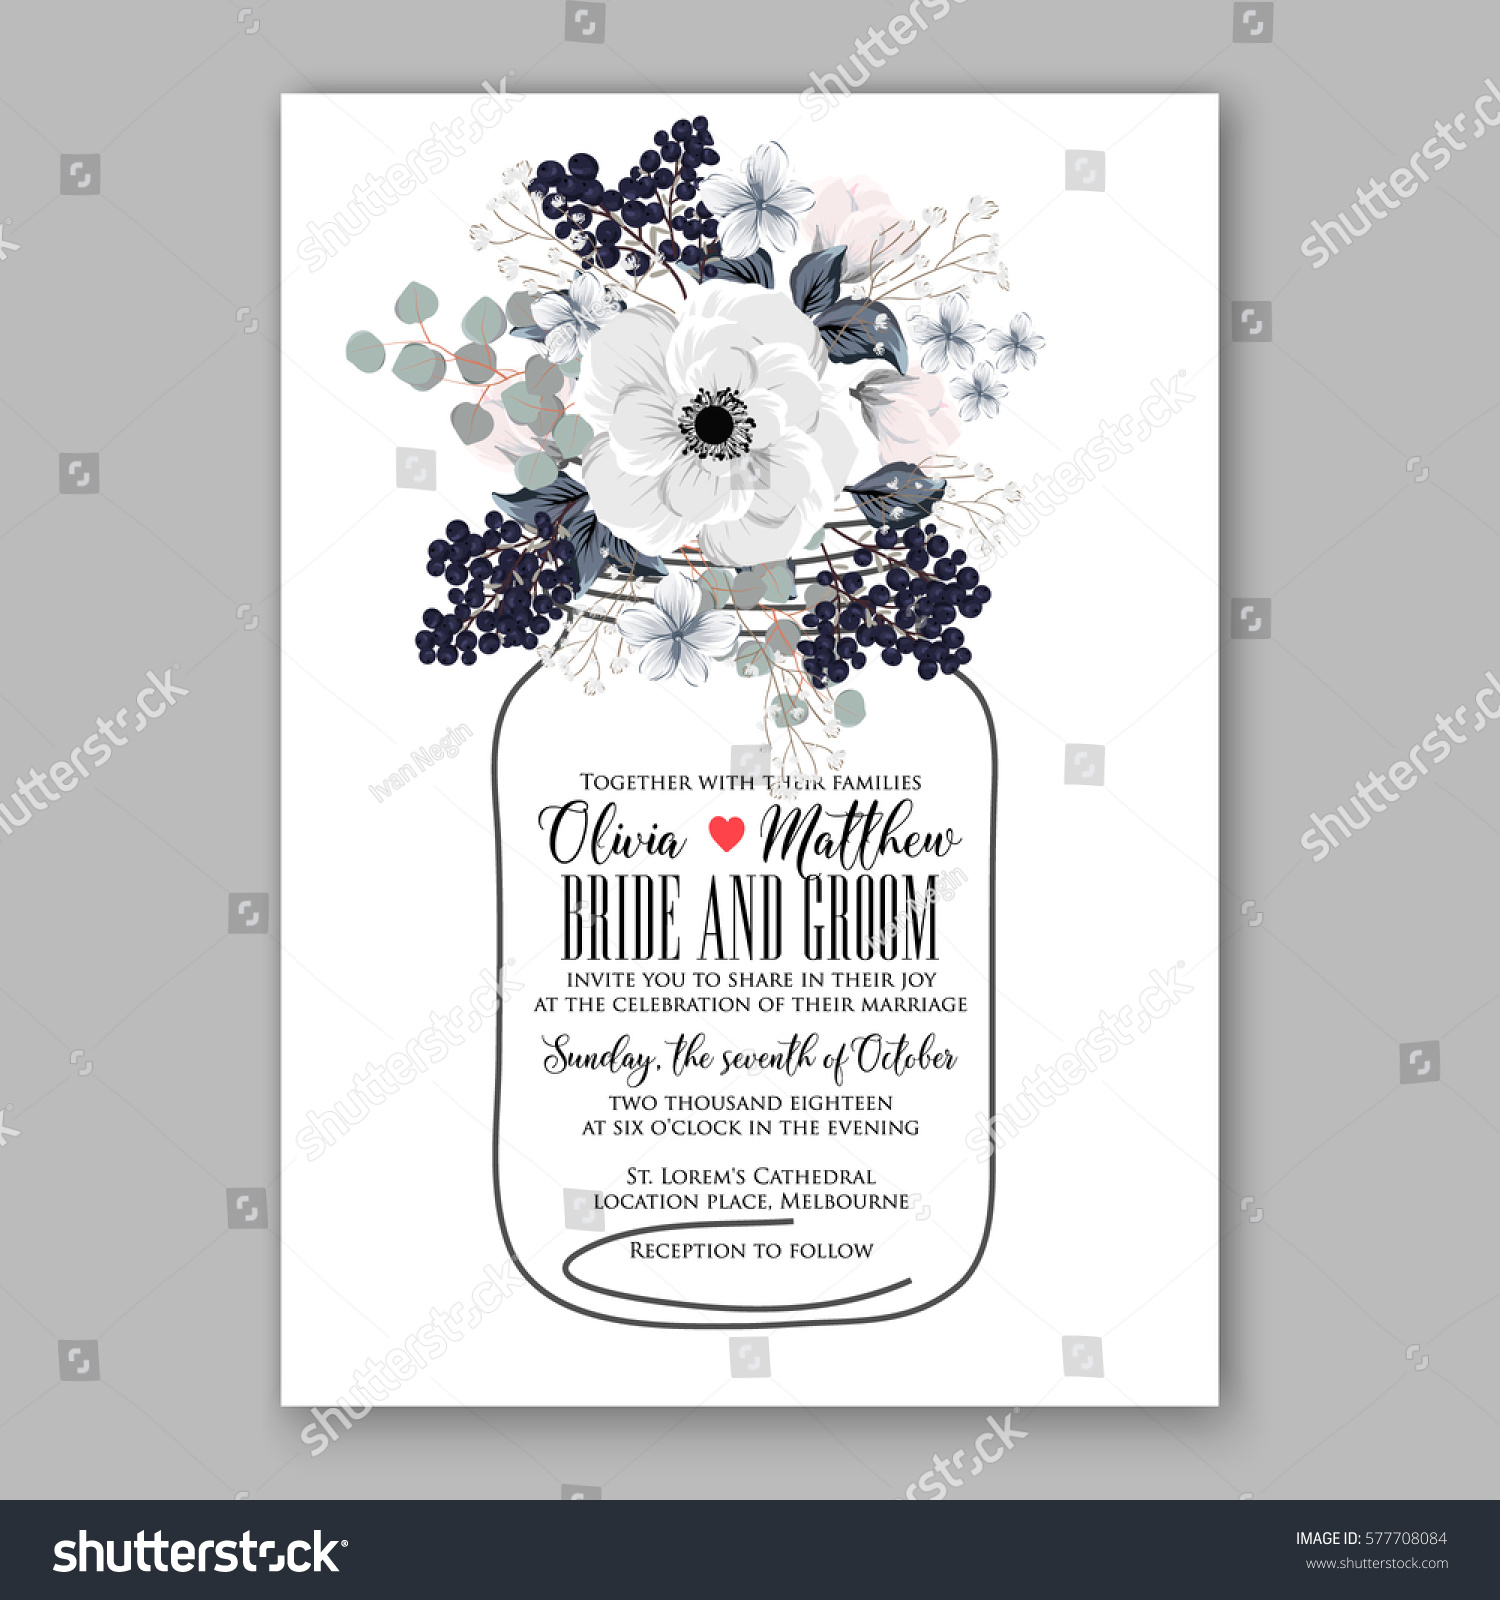 Anemone Wedding Invitation Card Template Floral Stock Vector (2018 ...